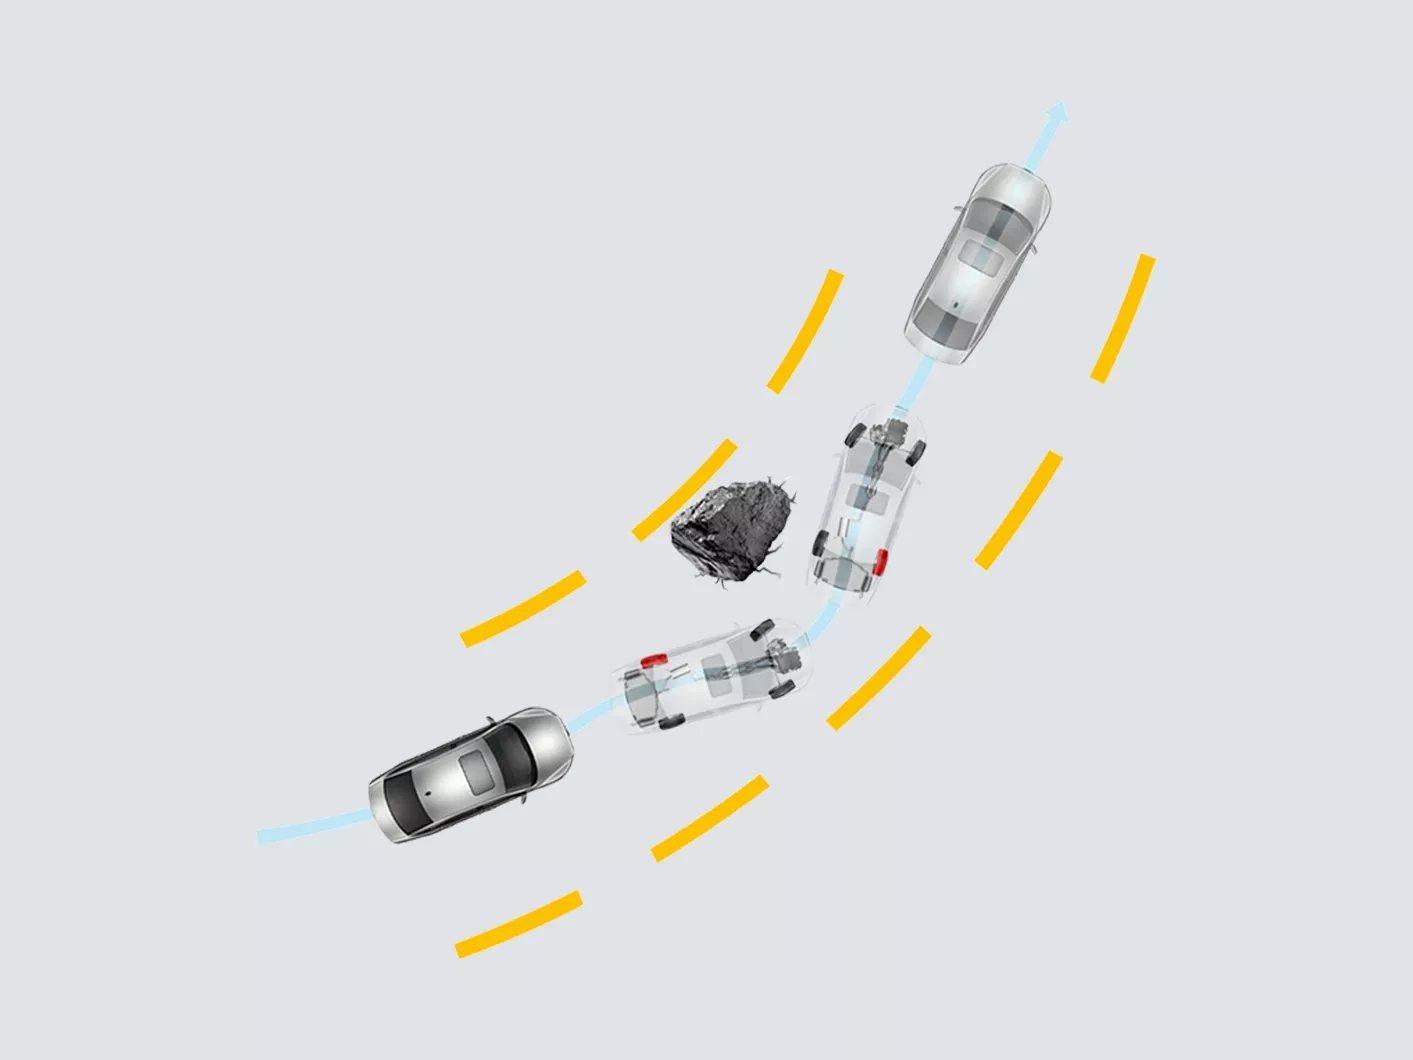 6 stability systems Tiguan